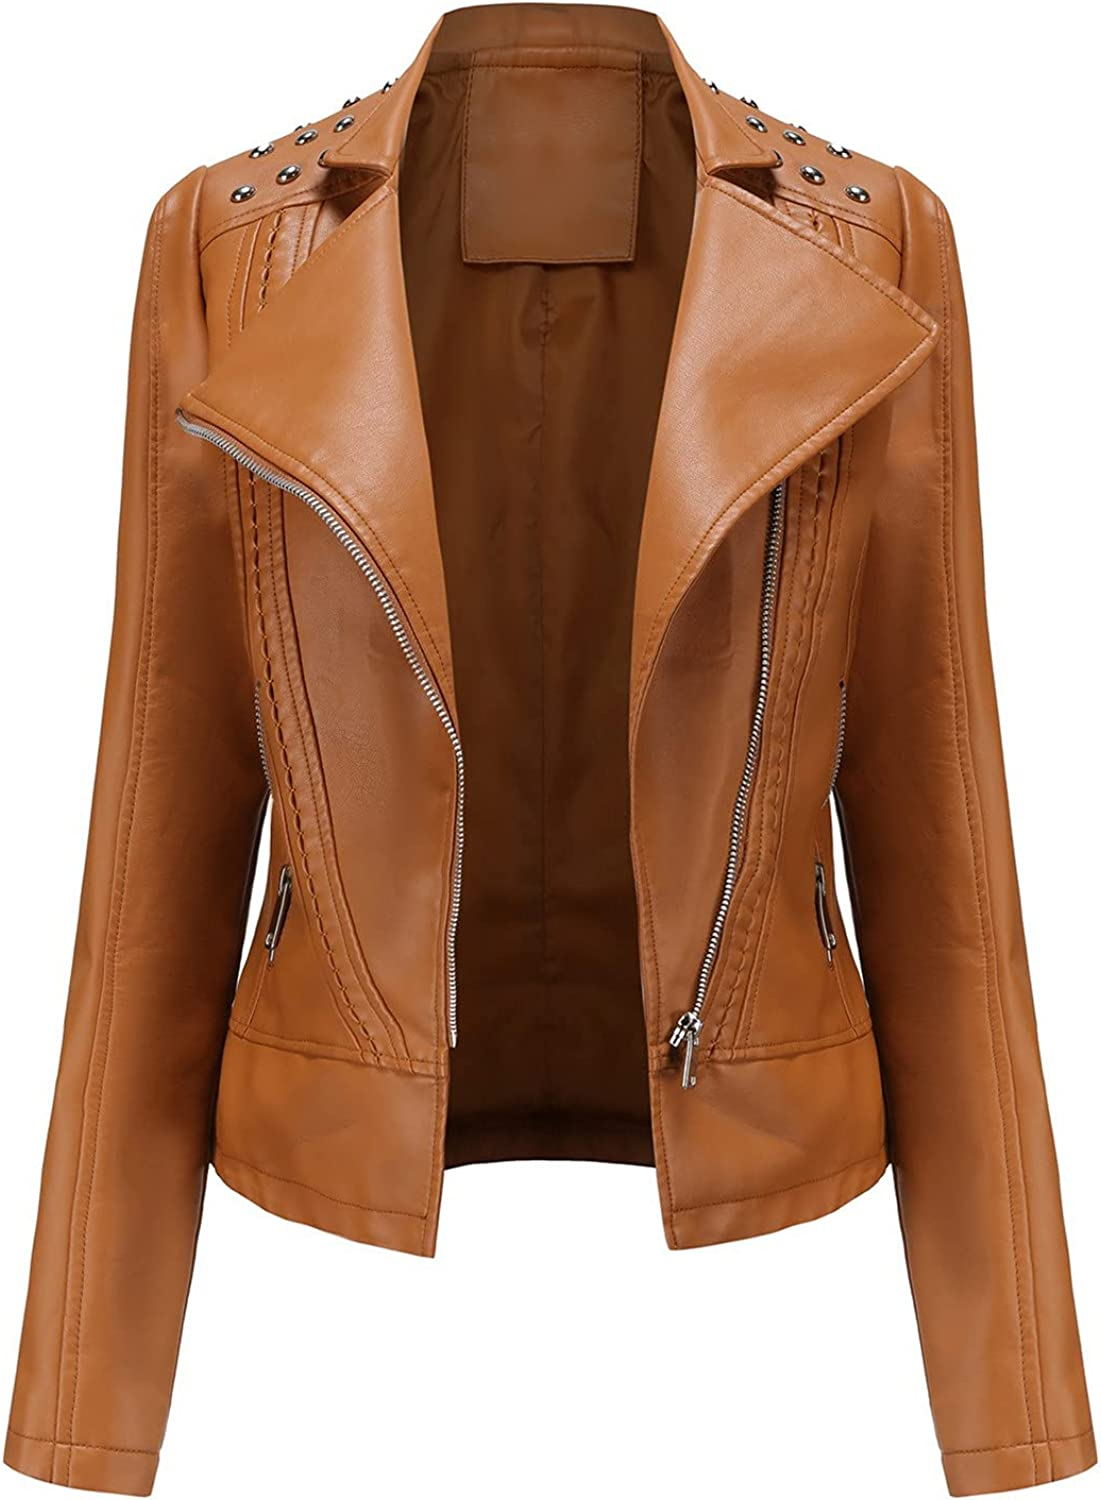 Oxodoi Women Zip-Up Motorcycle Crop Pu Faux Leather Biker Jacket Casual Turn Down Collar Coat for Spring Fall Winter S-3XL